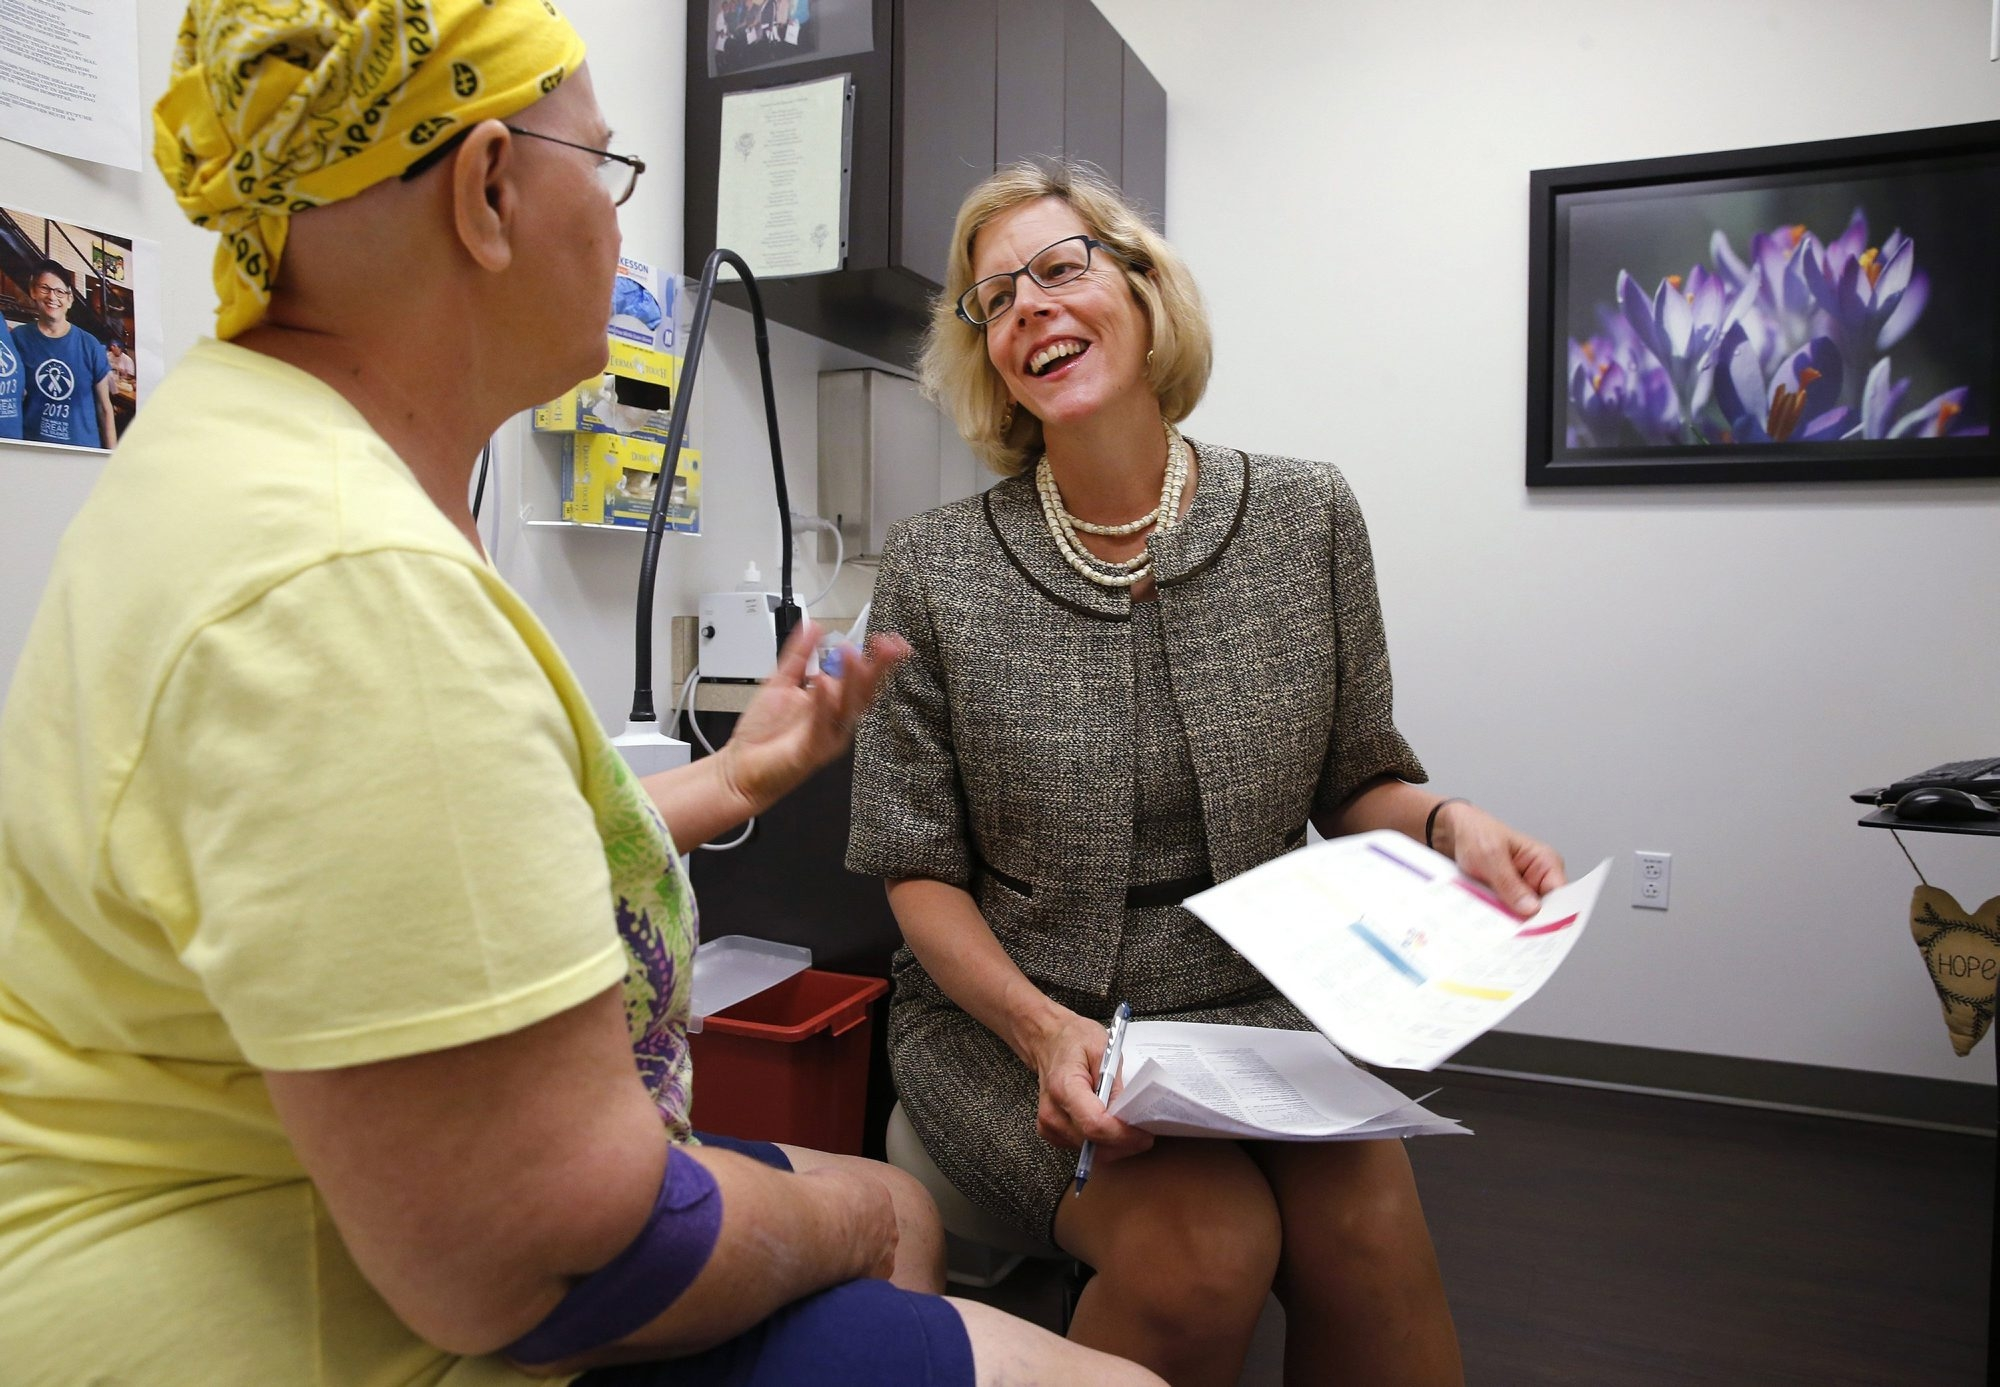 Dr. Carolyn Matthews, a gynecological oncologist, right, talks to patient Leslie John about her cancer in her office at the Baylor Charles A. Sammons Cancer Center in Dallas on Tuesday, Sept. 30, 2014. (David Woo/Dallas Morning News/MCT)